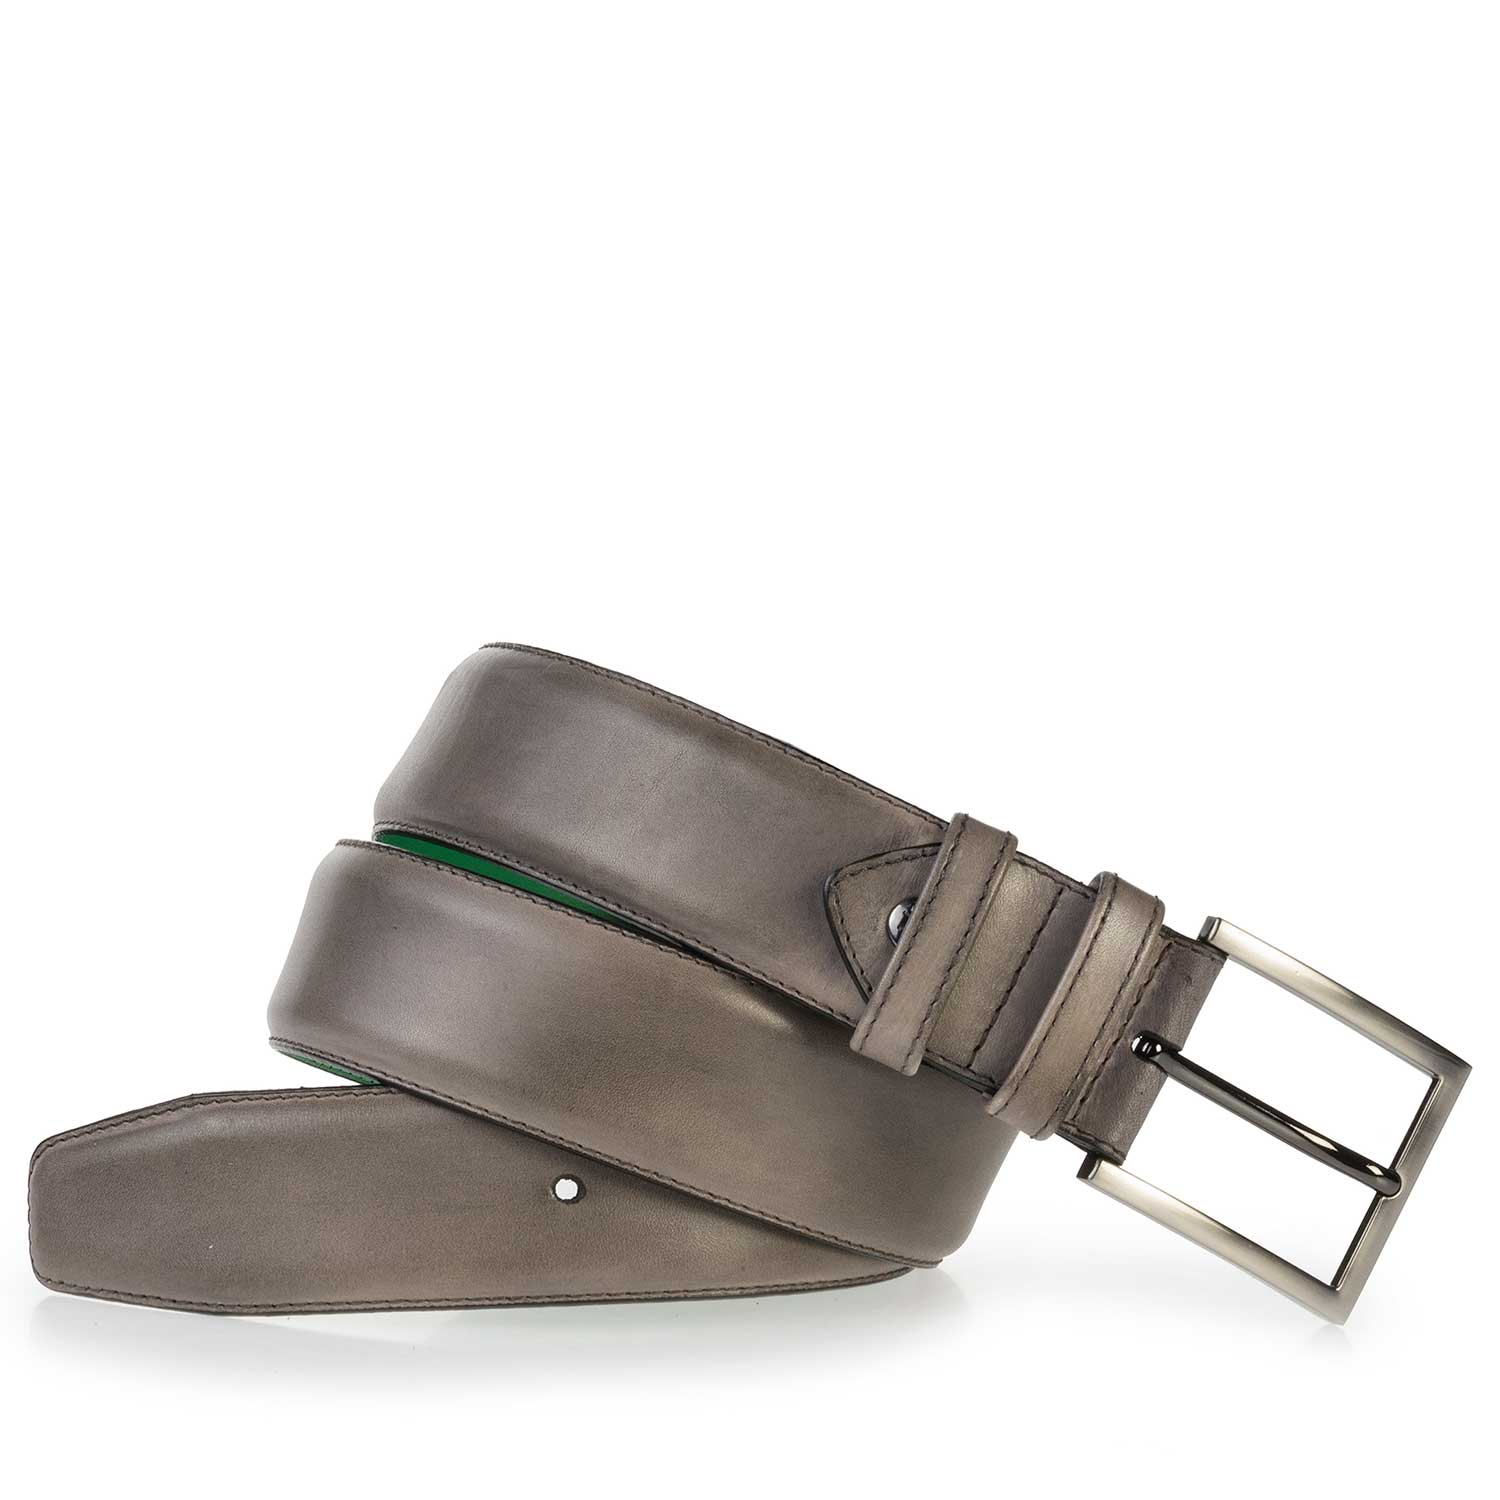 75178/02 - Taupe-coloured leather belt